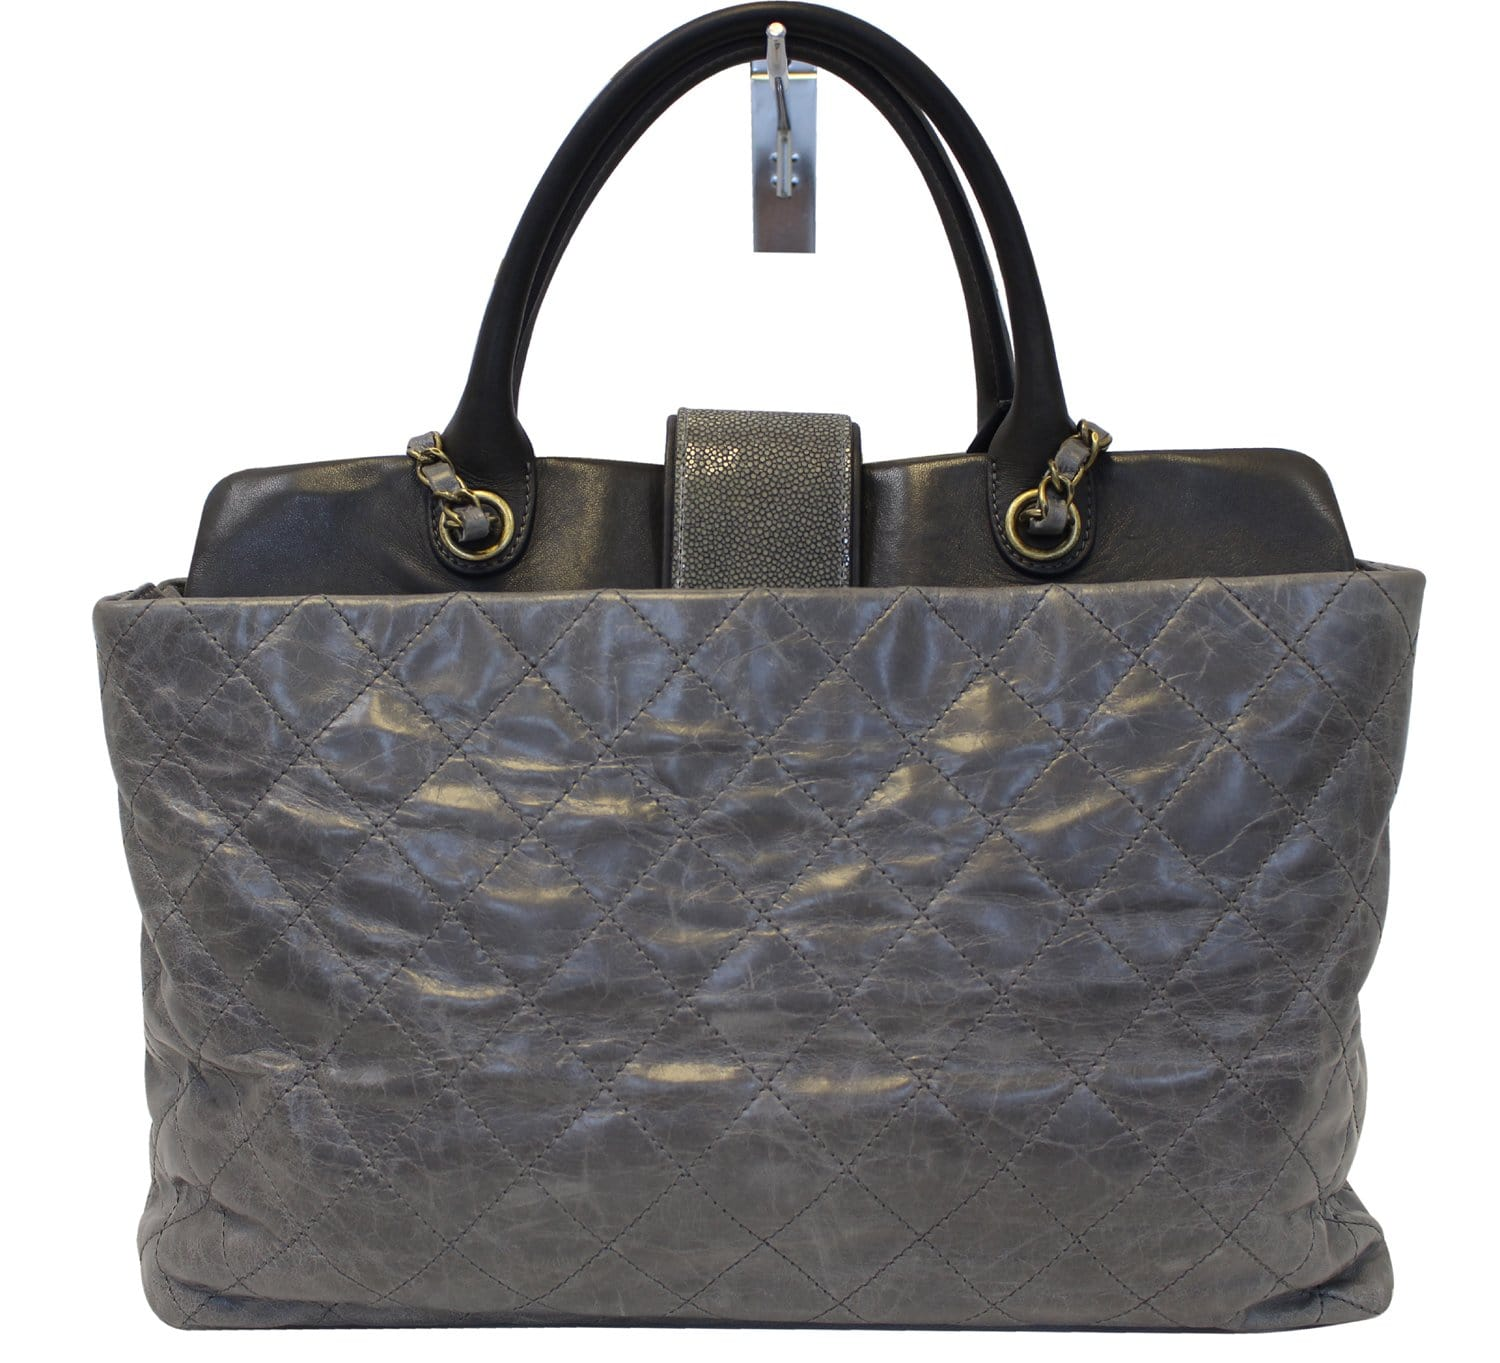 37cb7c95656d CHANEL Grey Quilted Calfskin Leather Stingray Bindi CC Shopper Tote Bag